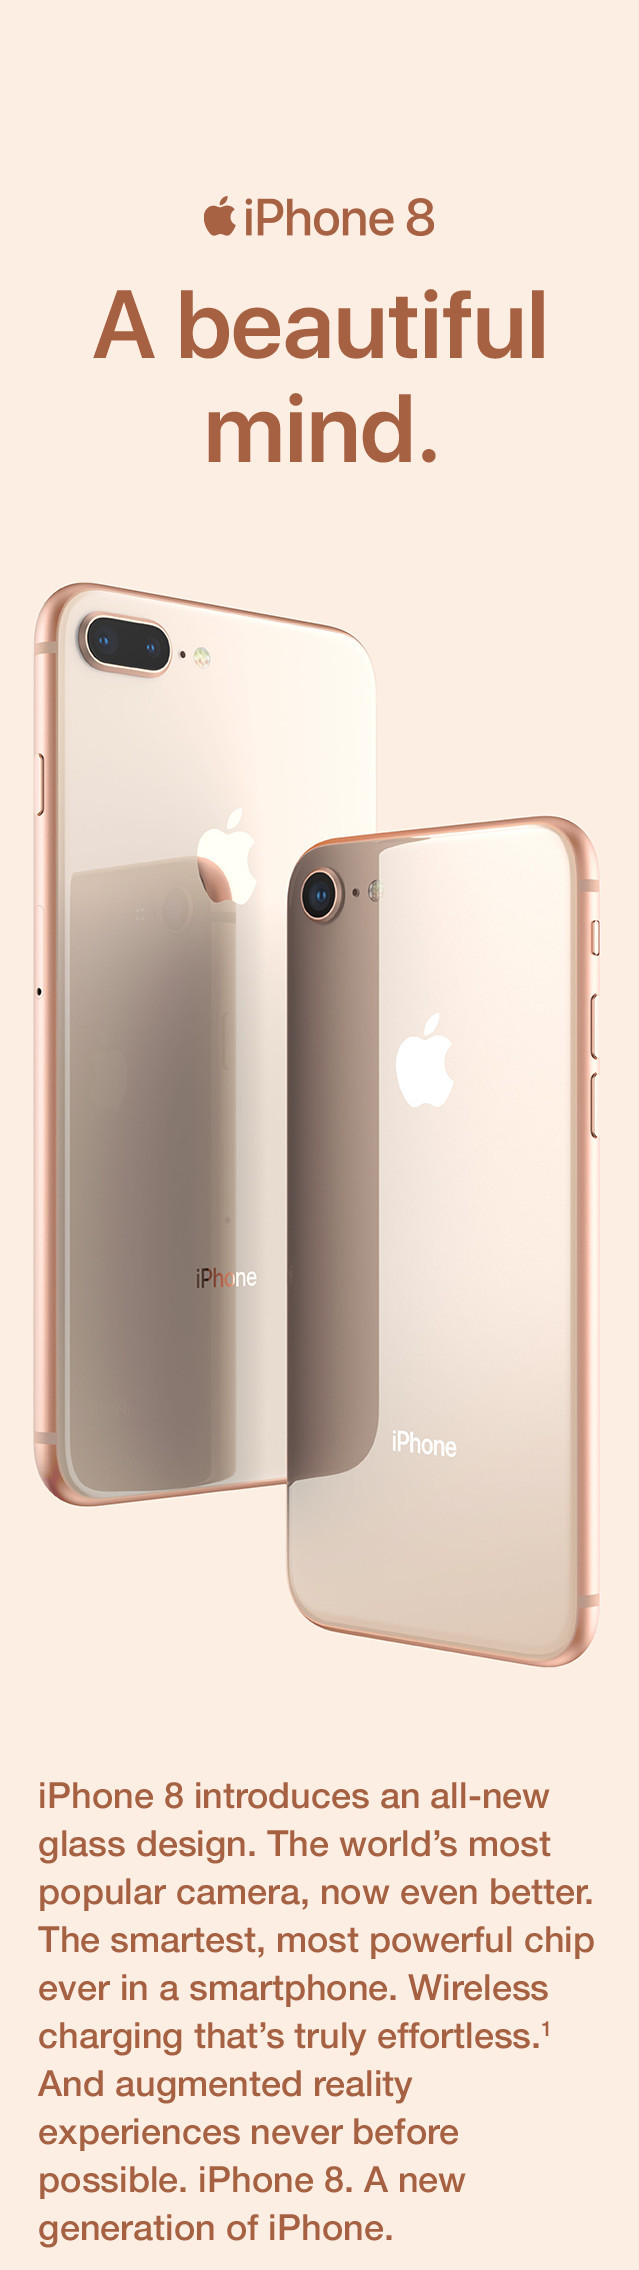 iPhone8 features